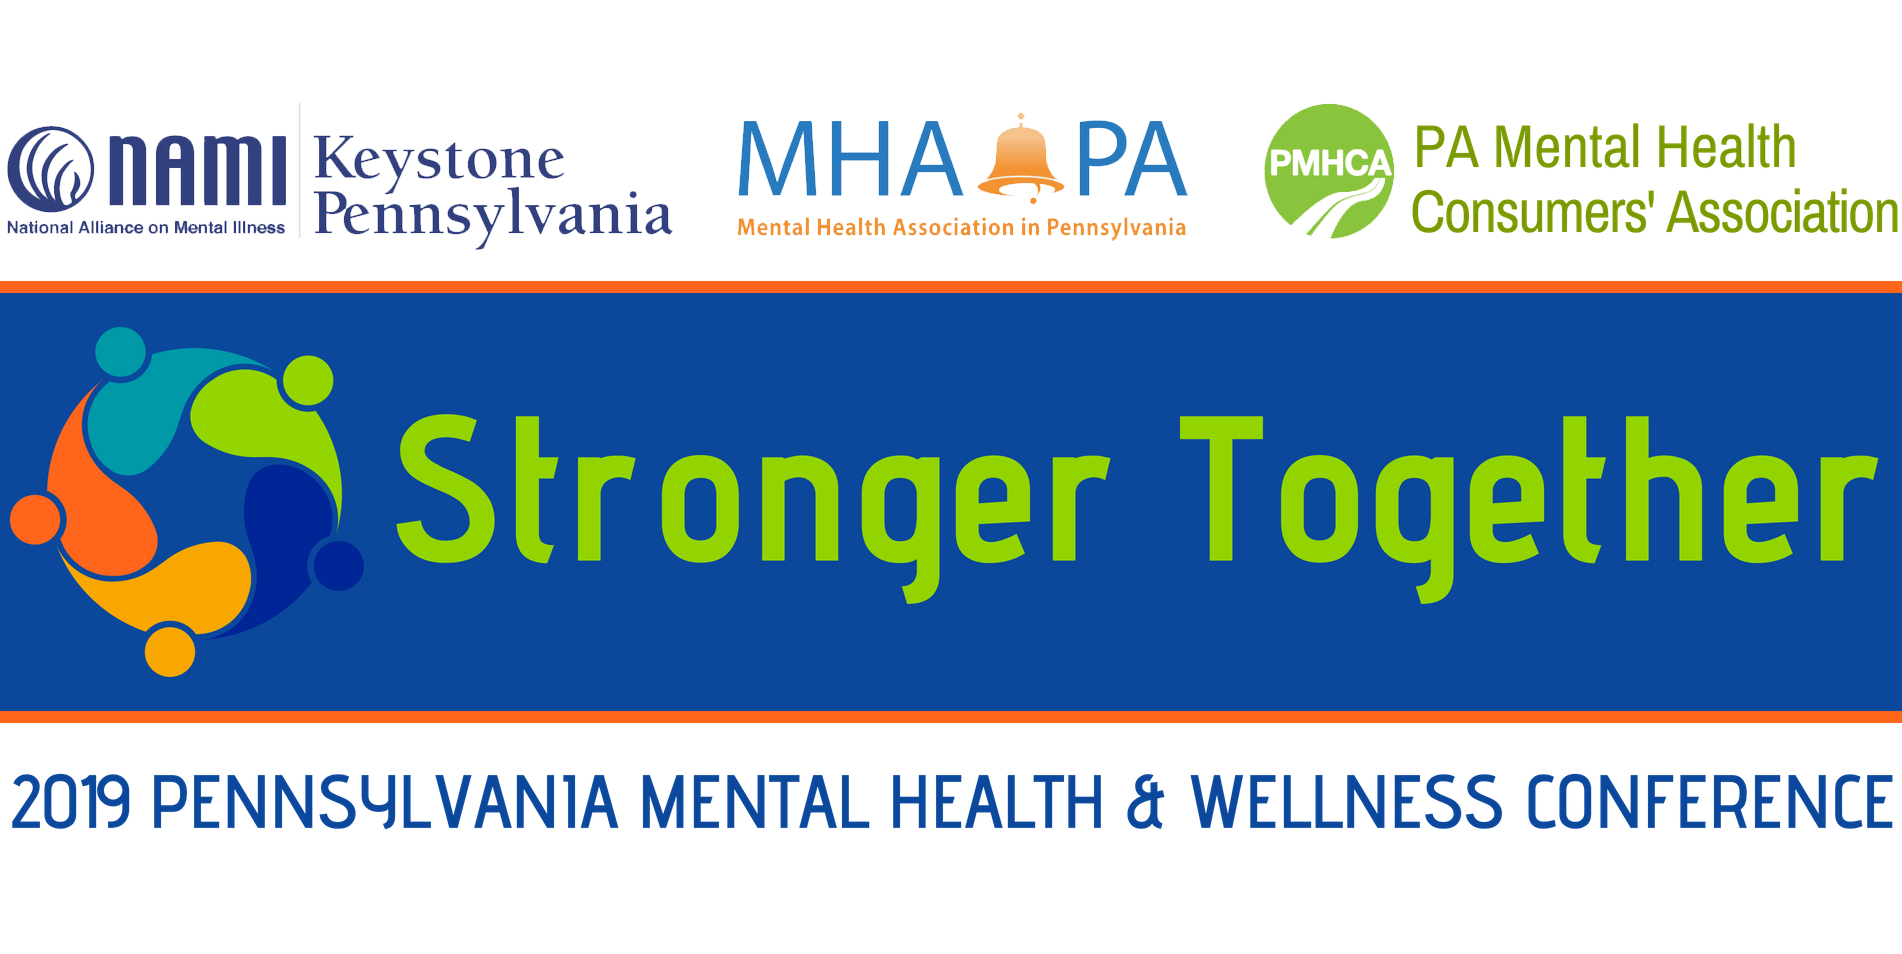 2019 Pennsylvania Mental Health and Wellness Conference